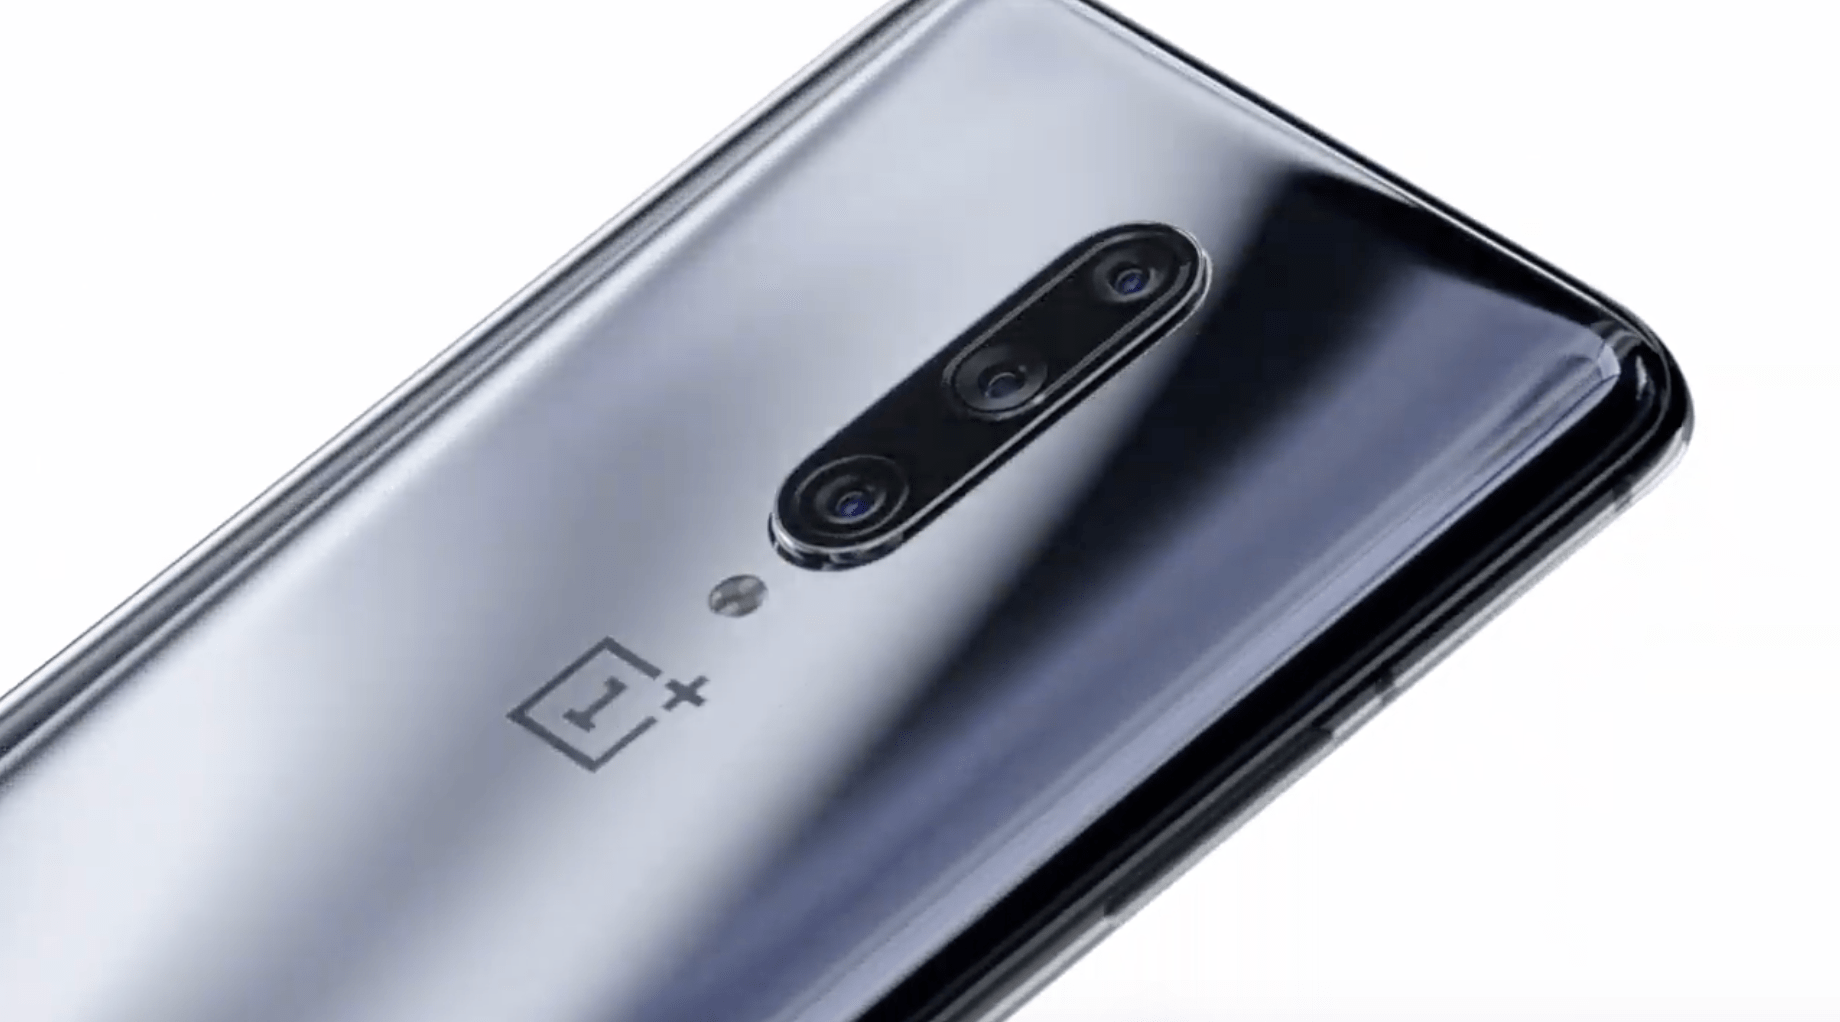 The OnePlus 7 Pro camera shames the most expensive iPhone. There is a result in DxO